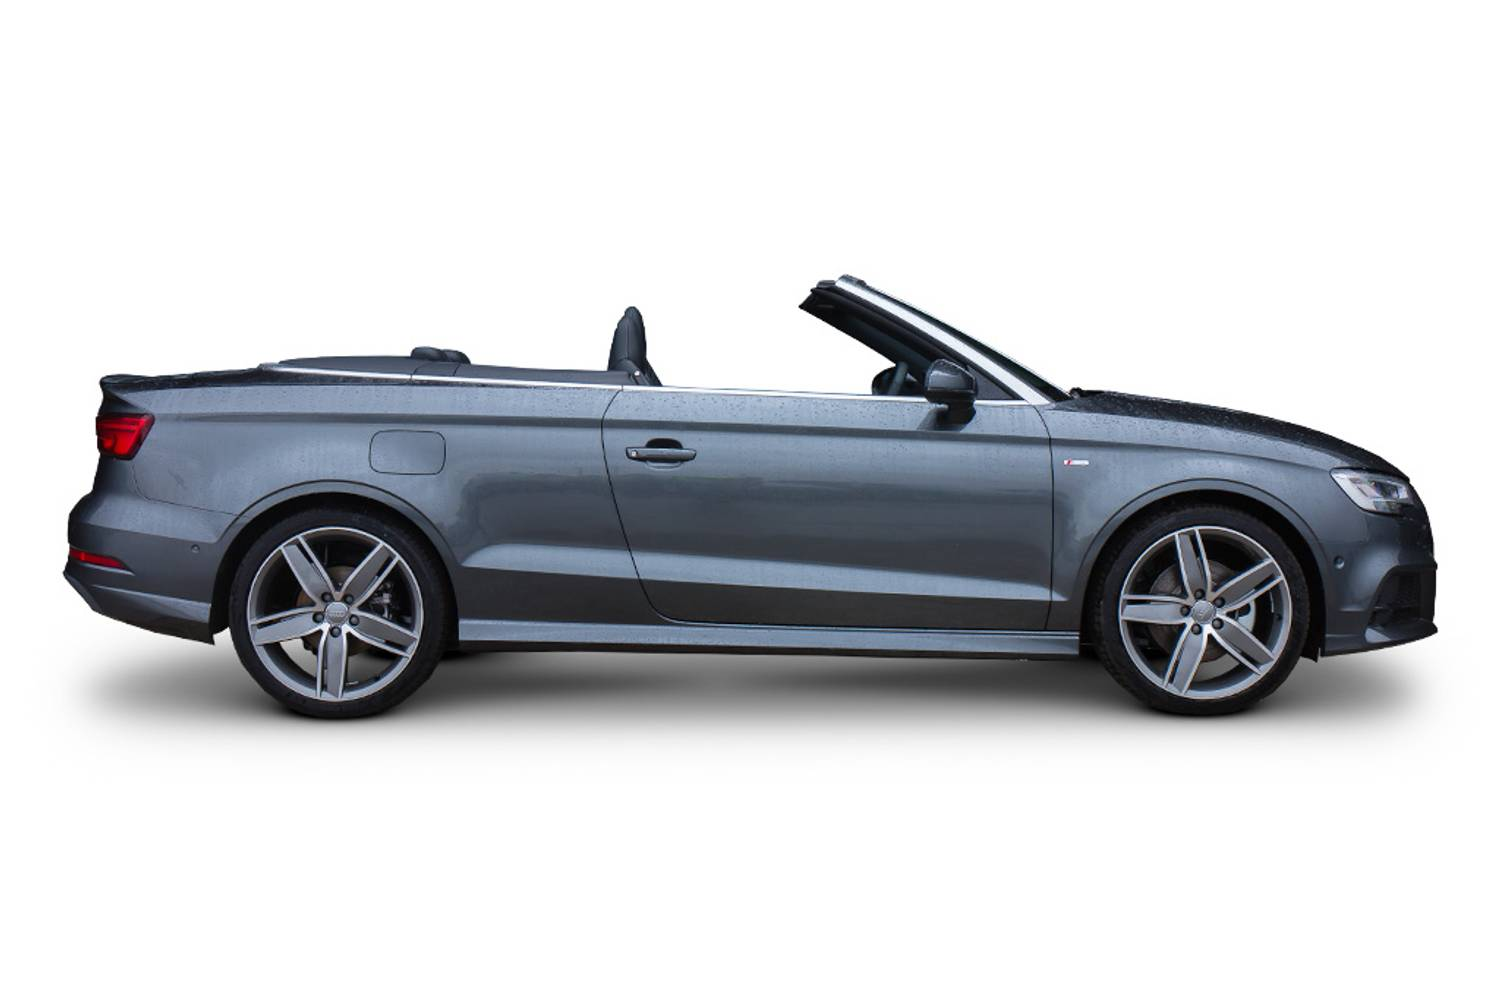 new audi a3 cabriolet 1 5 tfsi sport 2 door 2017 for sale. Black Bedroom Furniture Sets. Home Design Ideas